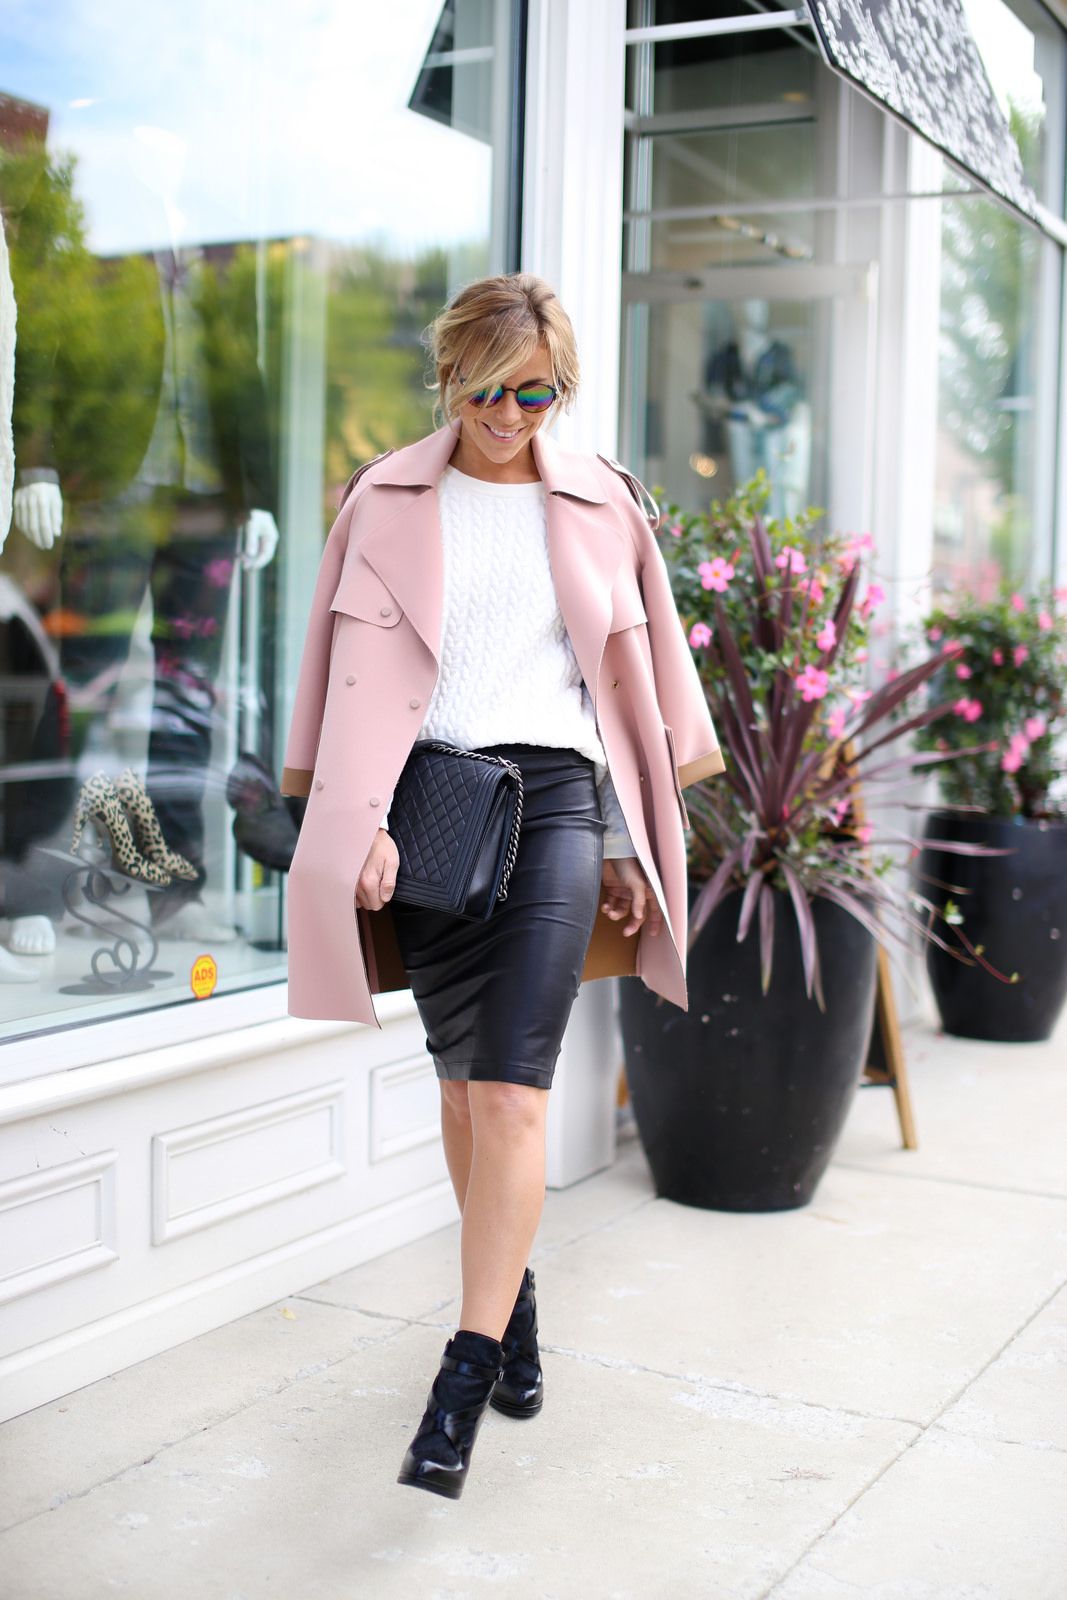 Mary Seng, too has the feminie rockstar routine down with a pretty pink pea coat, cableknit sweater and high-heeled booties. We love the combination of fabric and textures from the patent leather heels to the quilting on her purse. Don't be afraid to mix and match metallic and soft materials to create your own signature look. Skirt: Helmut Lang, Top: Vince Camuto, Coat: Topshop, Shoes: French Connection, Purse: Chanel, Sunglasses: Nordstrom